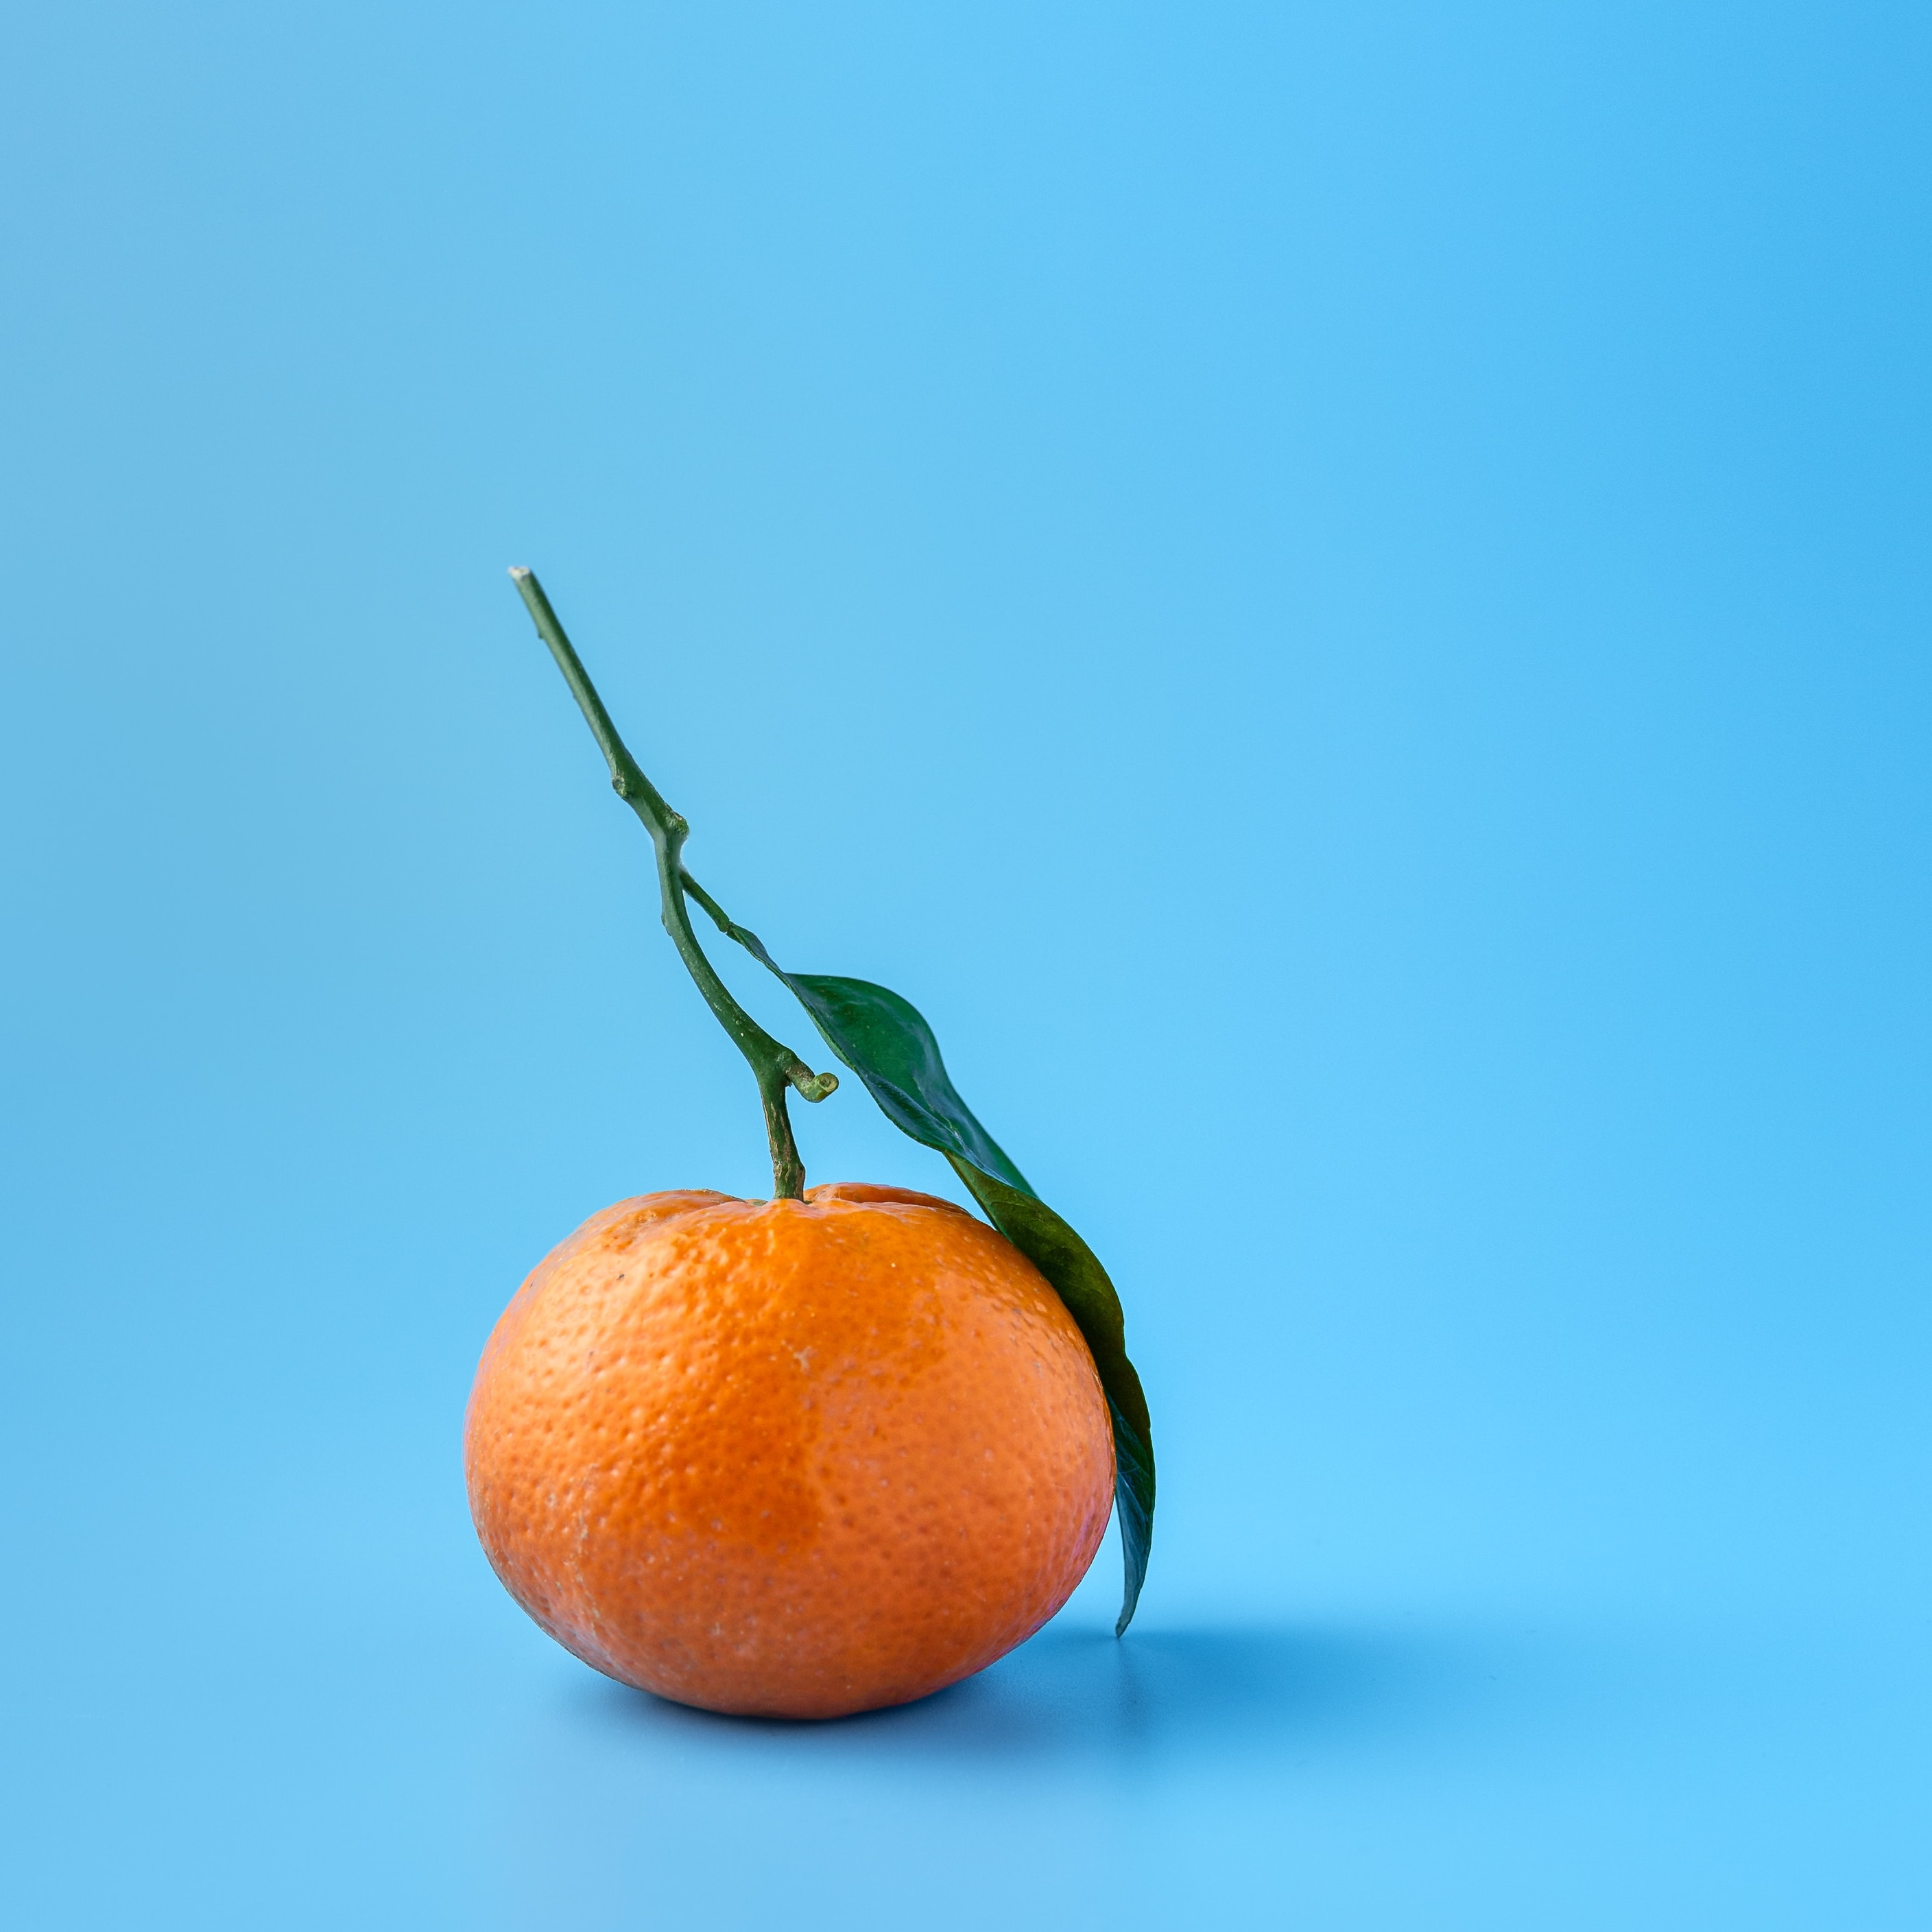 simple orange on blue background